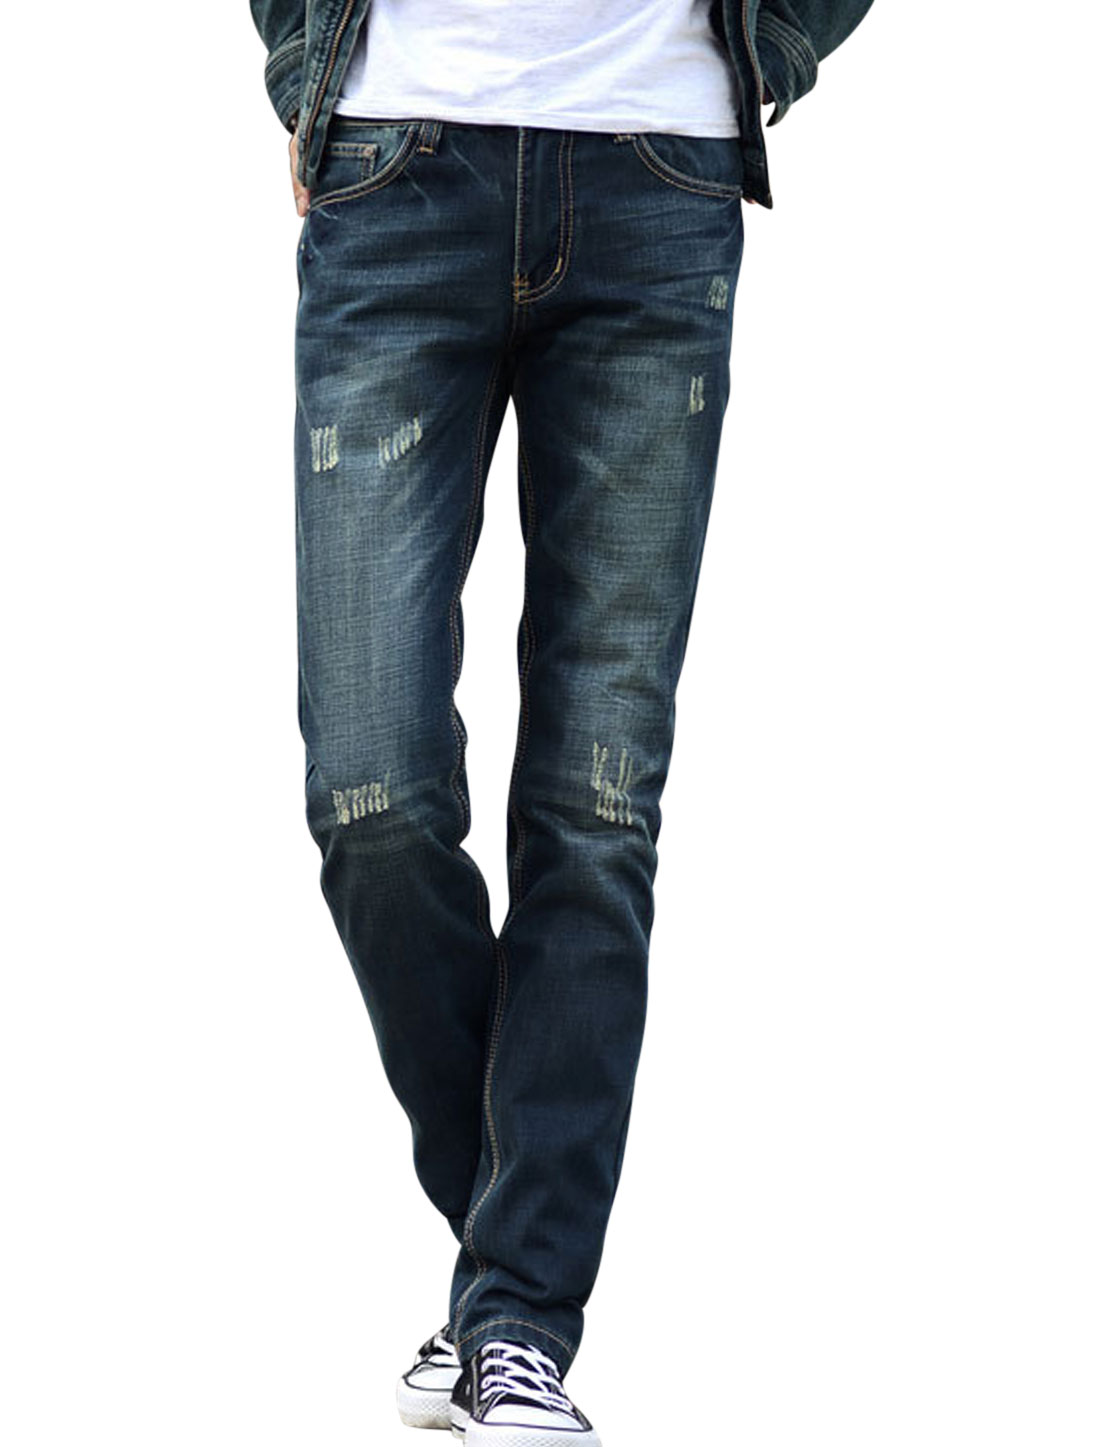 Men Mid Rise Destroied Design Double Front Pockets Chic Denim Pants Navy Blue W30